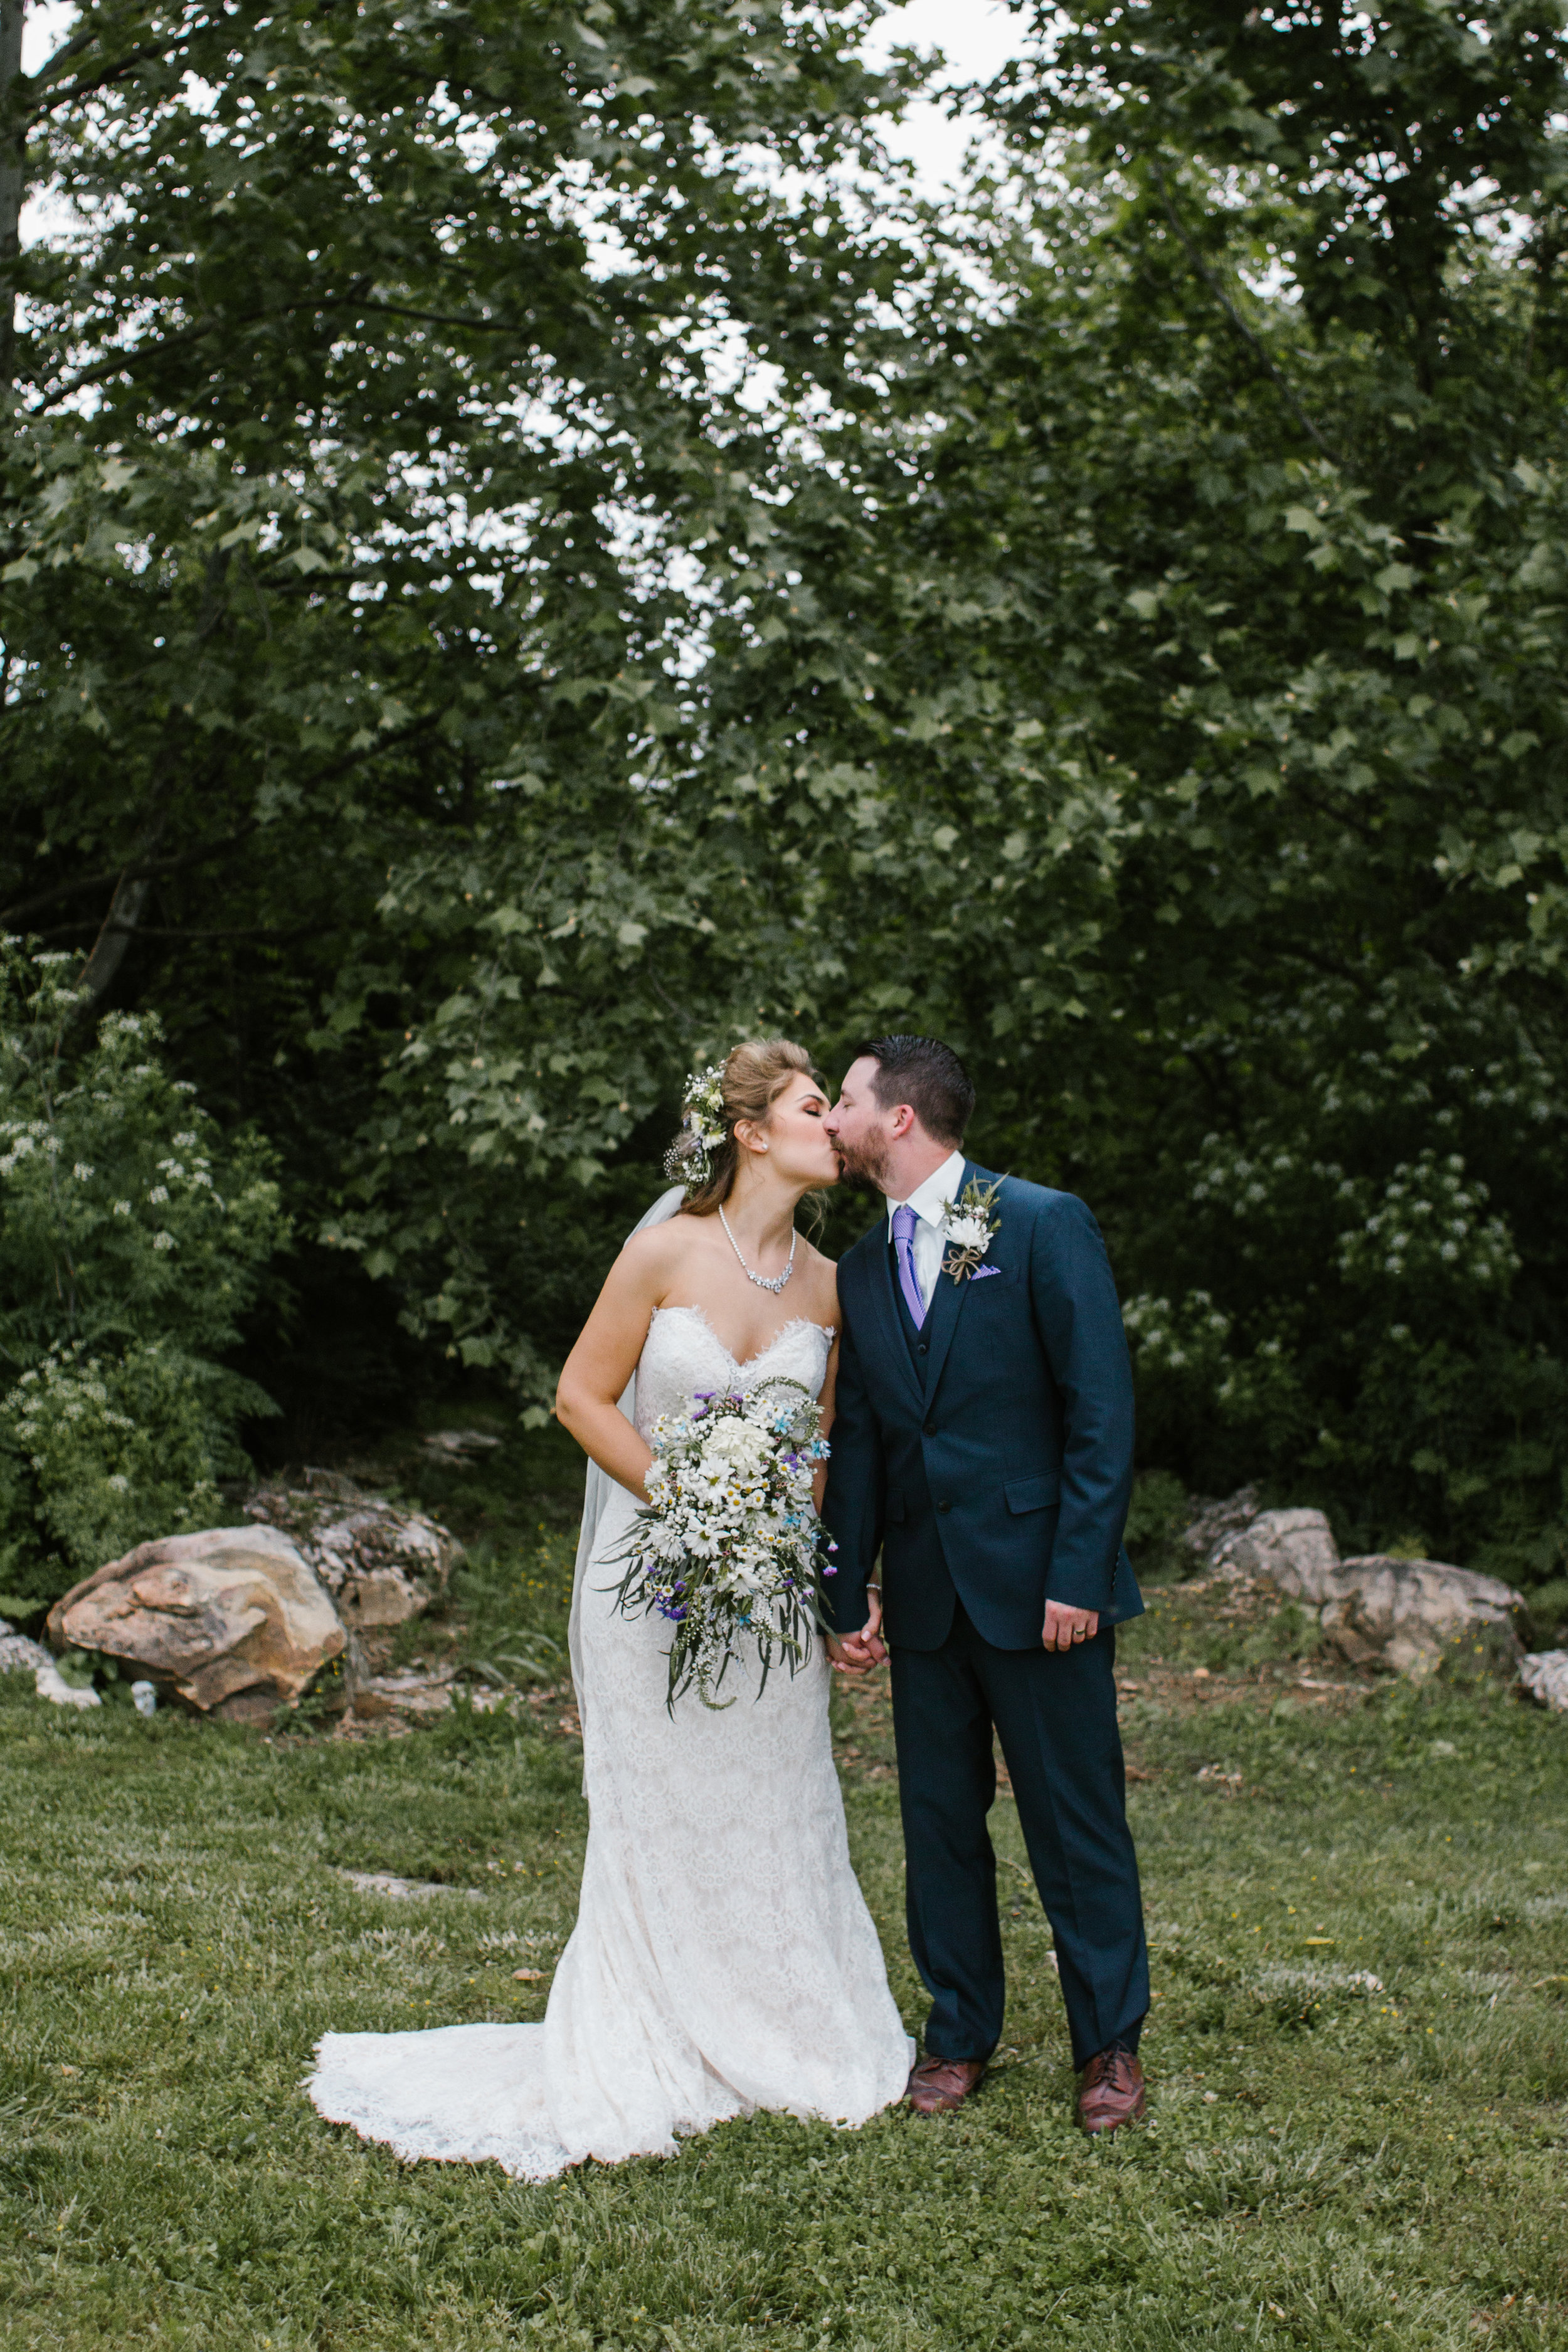 """Jason & I wanted to thank you from the bottom of our hearts for the phenomenal job you did on our wedding photos. They are so breathtakingly beautiful & we are so in love with them. You are so blessed to have such wonderful talent & creativity and to have the ability to create something that we will cherish the rest of our lives. We are so happy that we met you and that you were a part of such a special day for us.""  -Angie & Jason M."